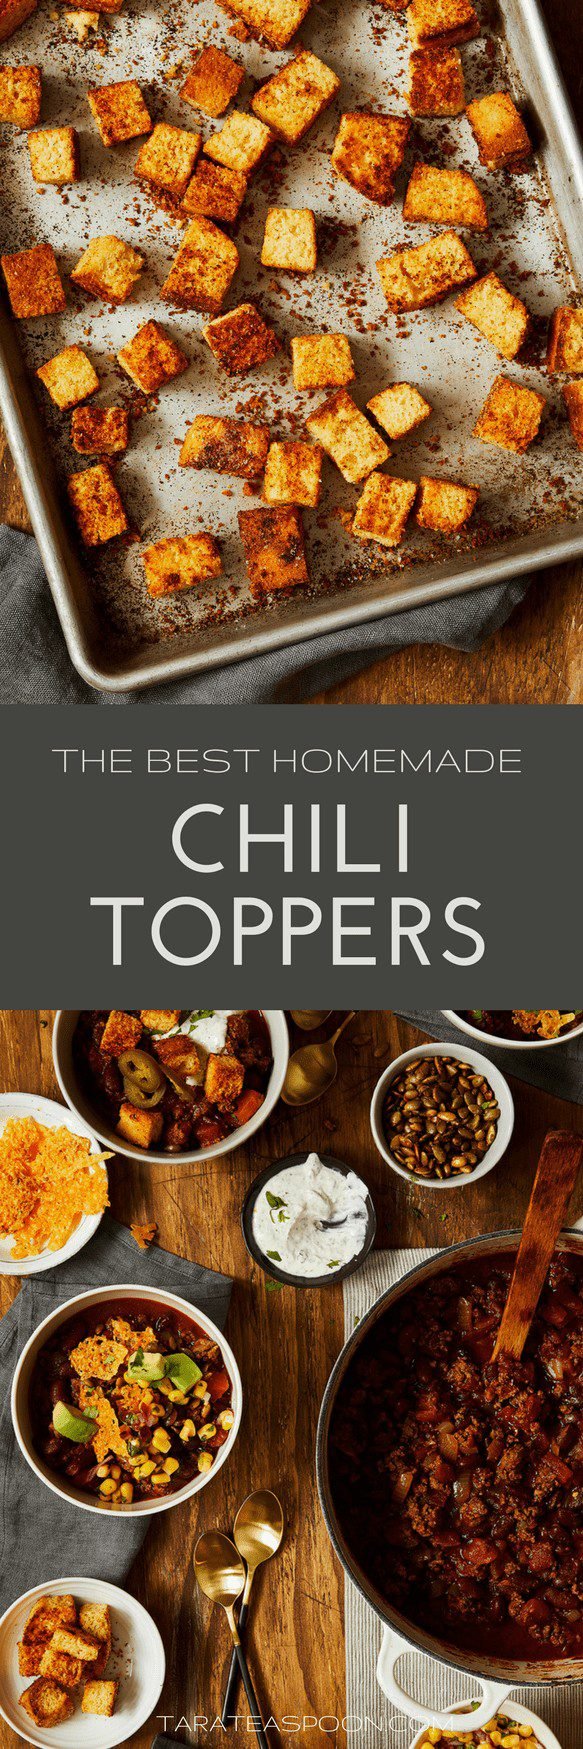 the best chili toppers for pinning